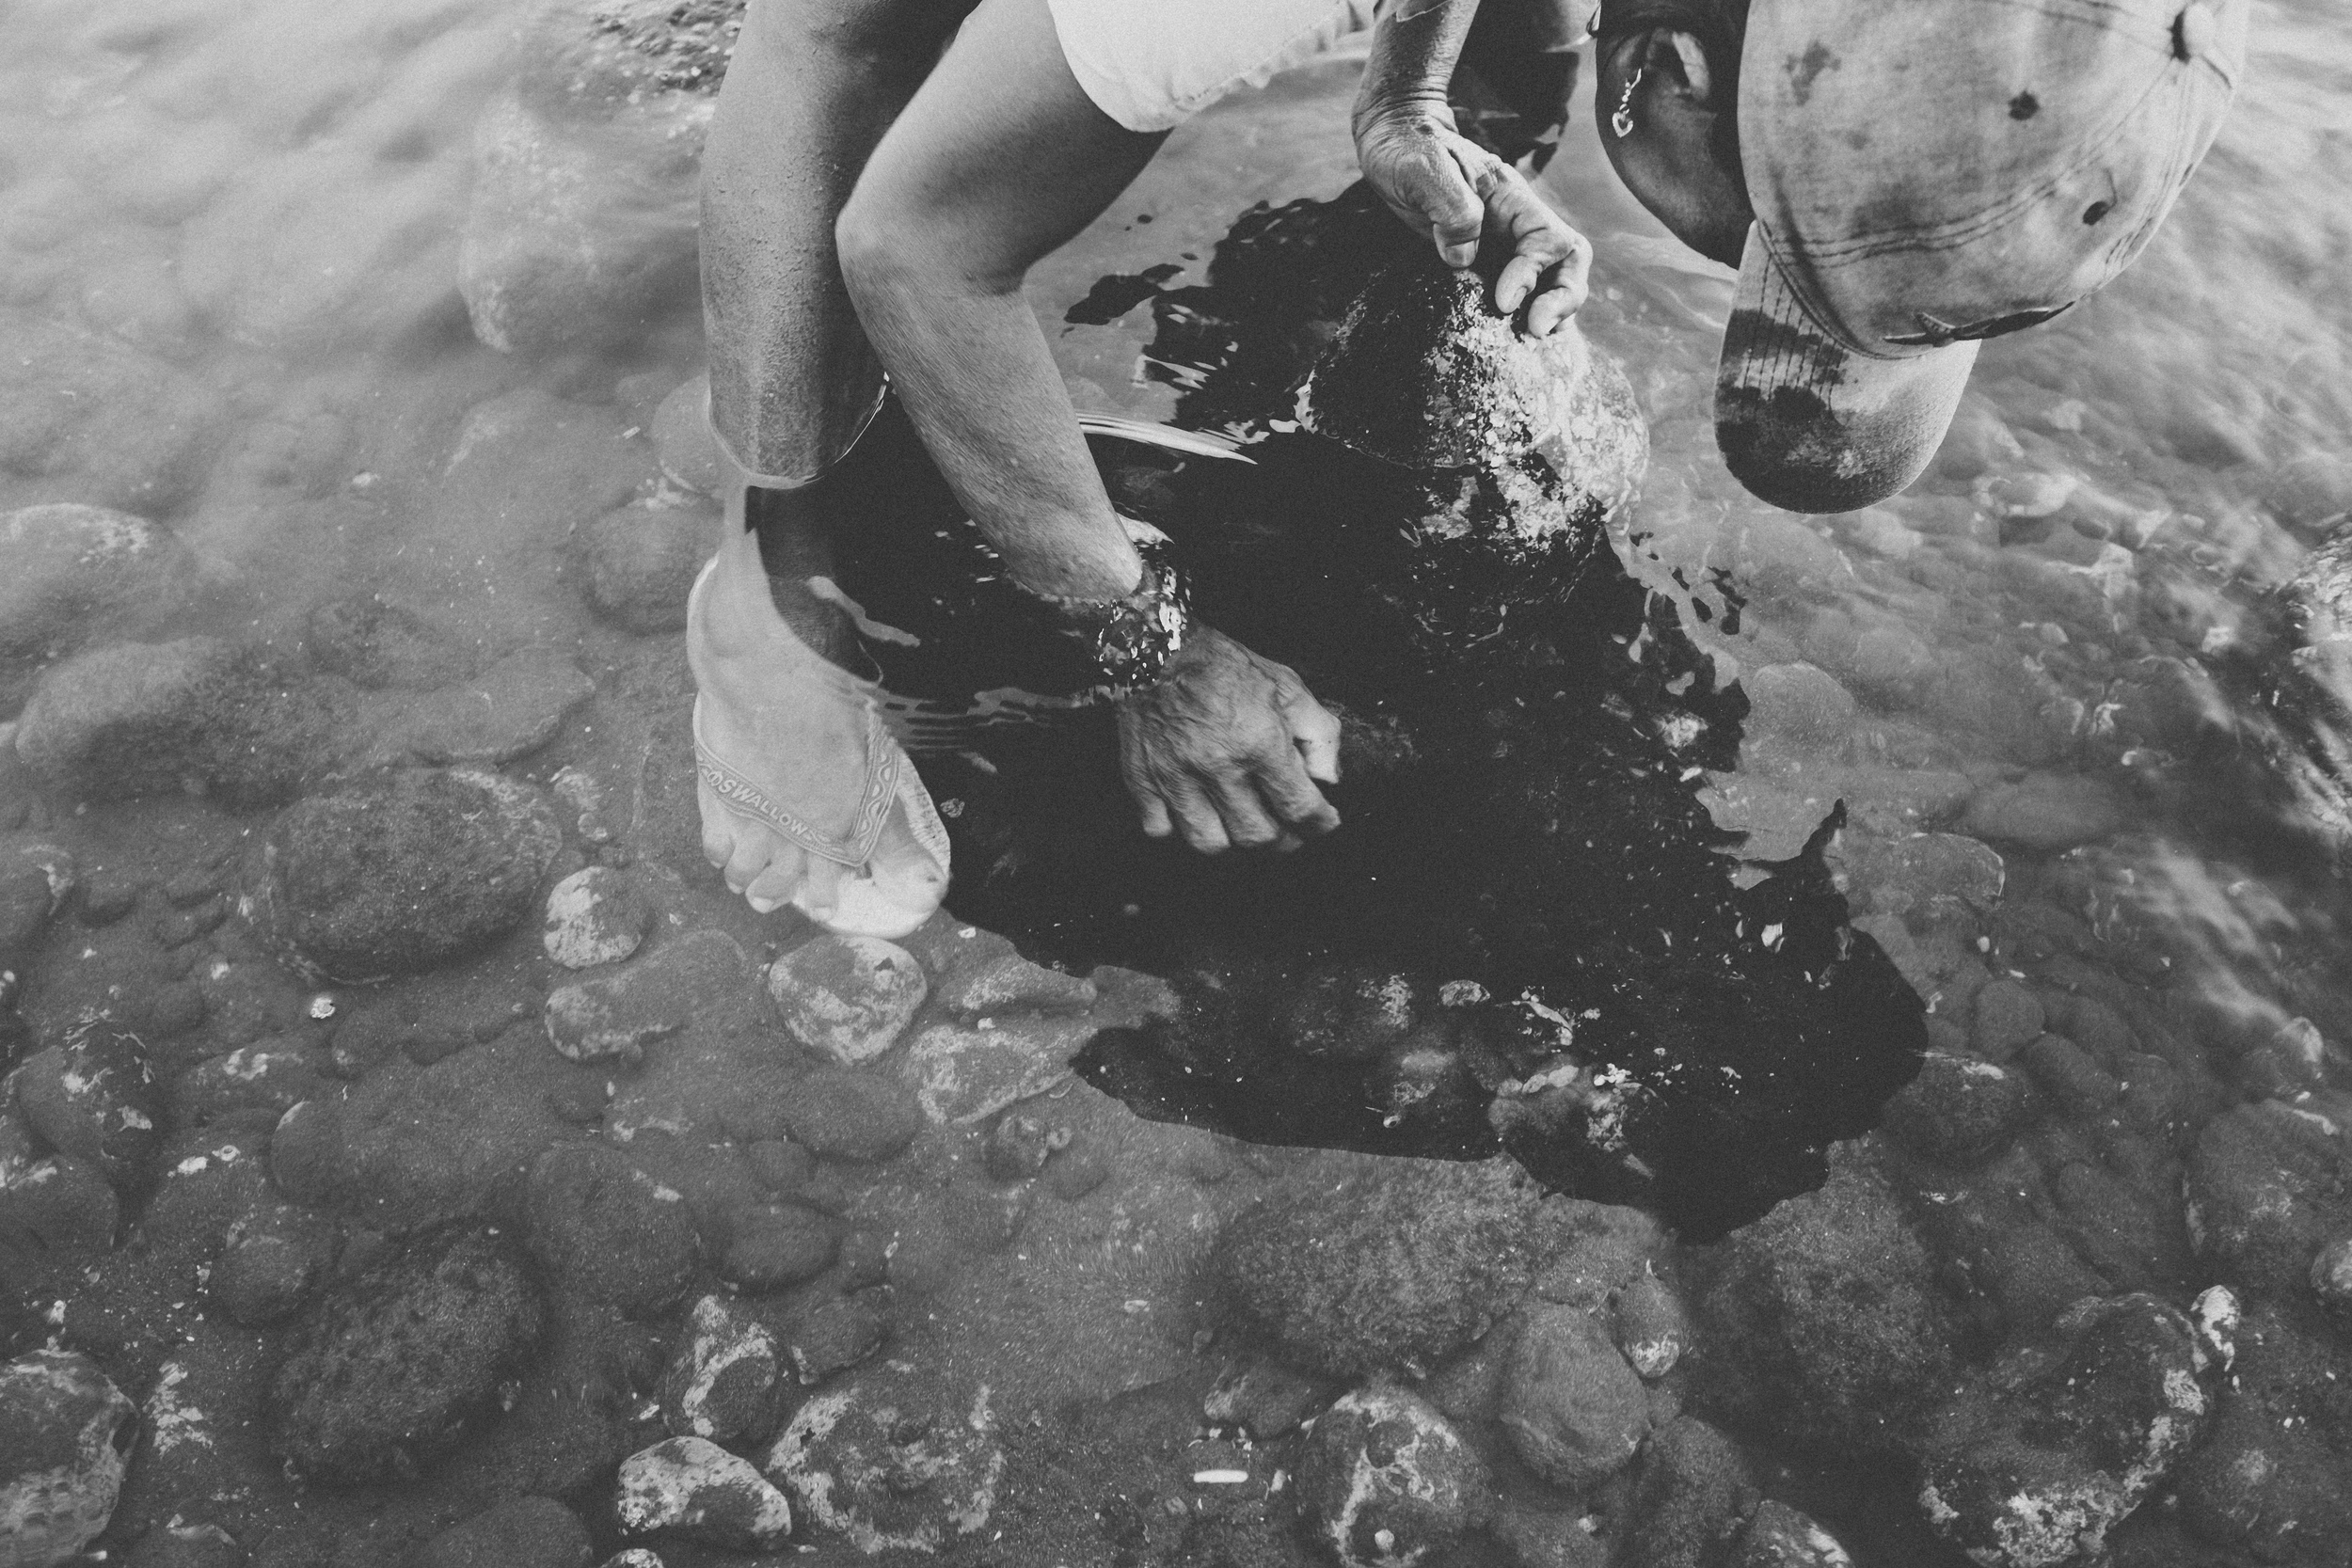 Bali_Indonesia_photo_journalism_shellfish_collecting_global_eyes_media_010.jpg